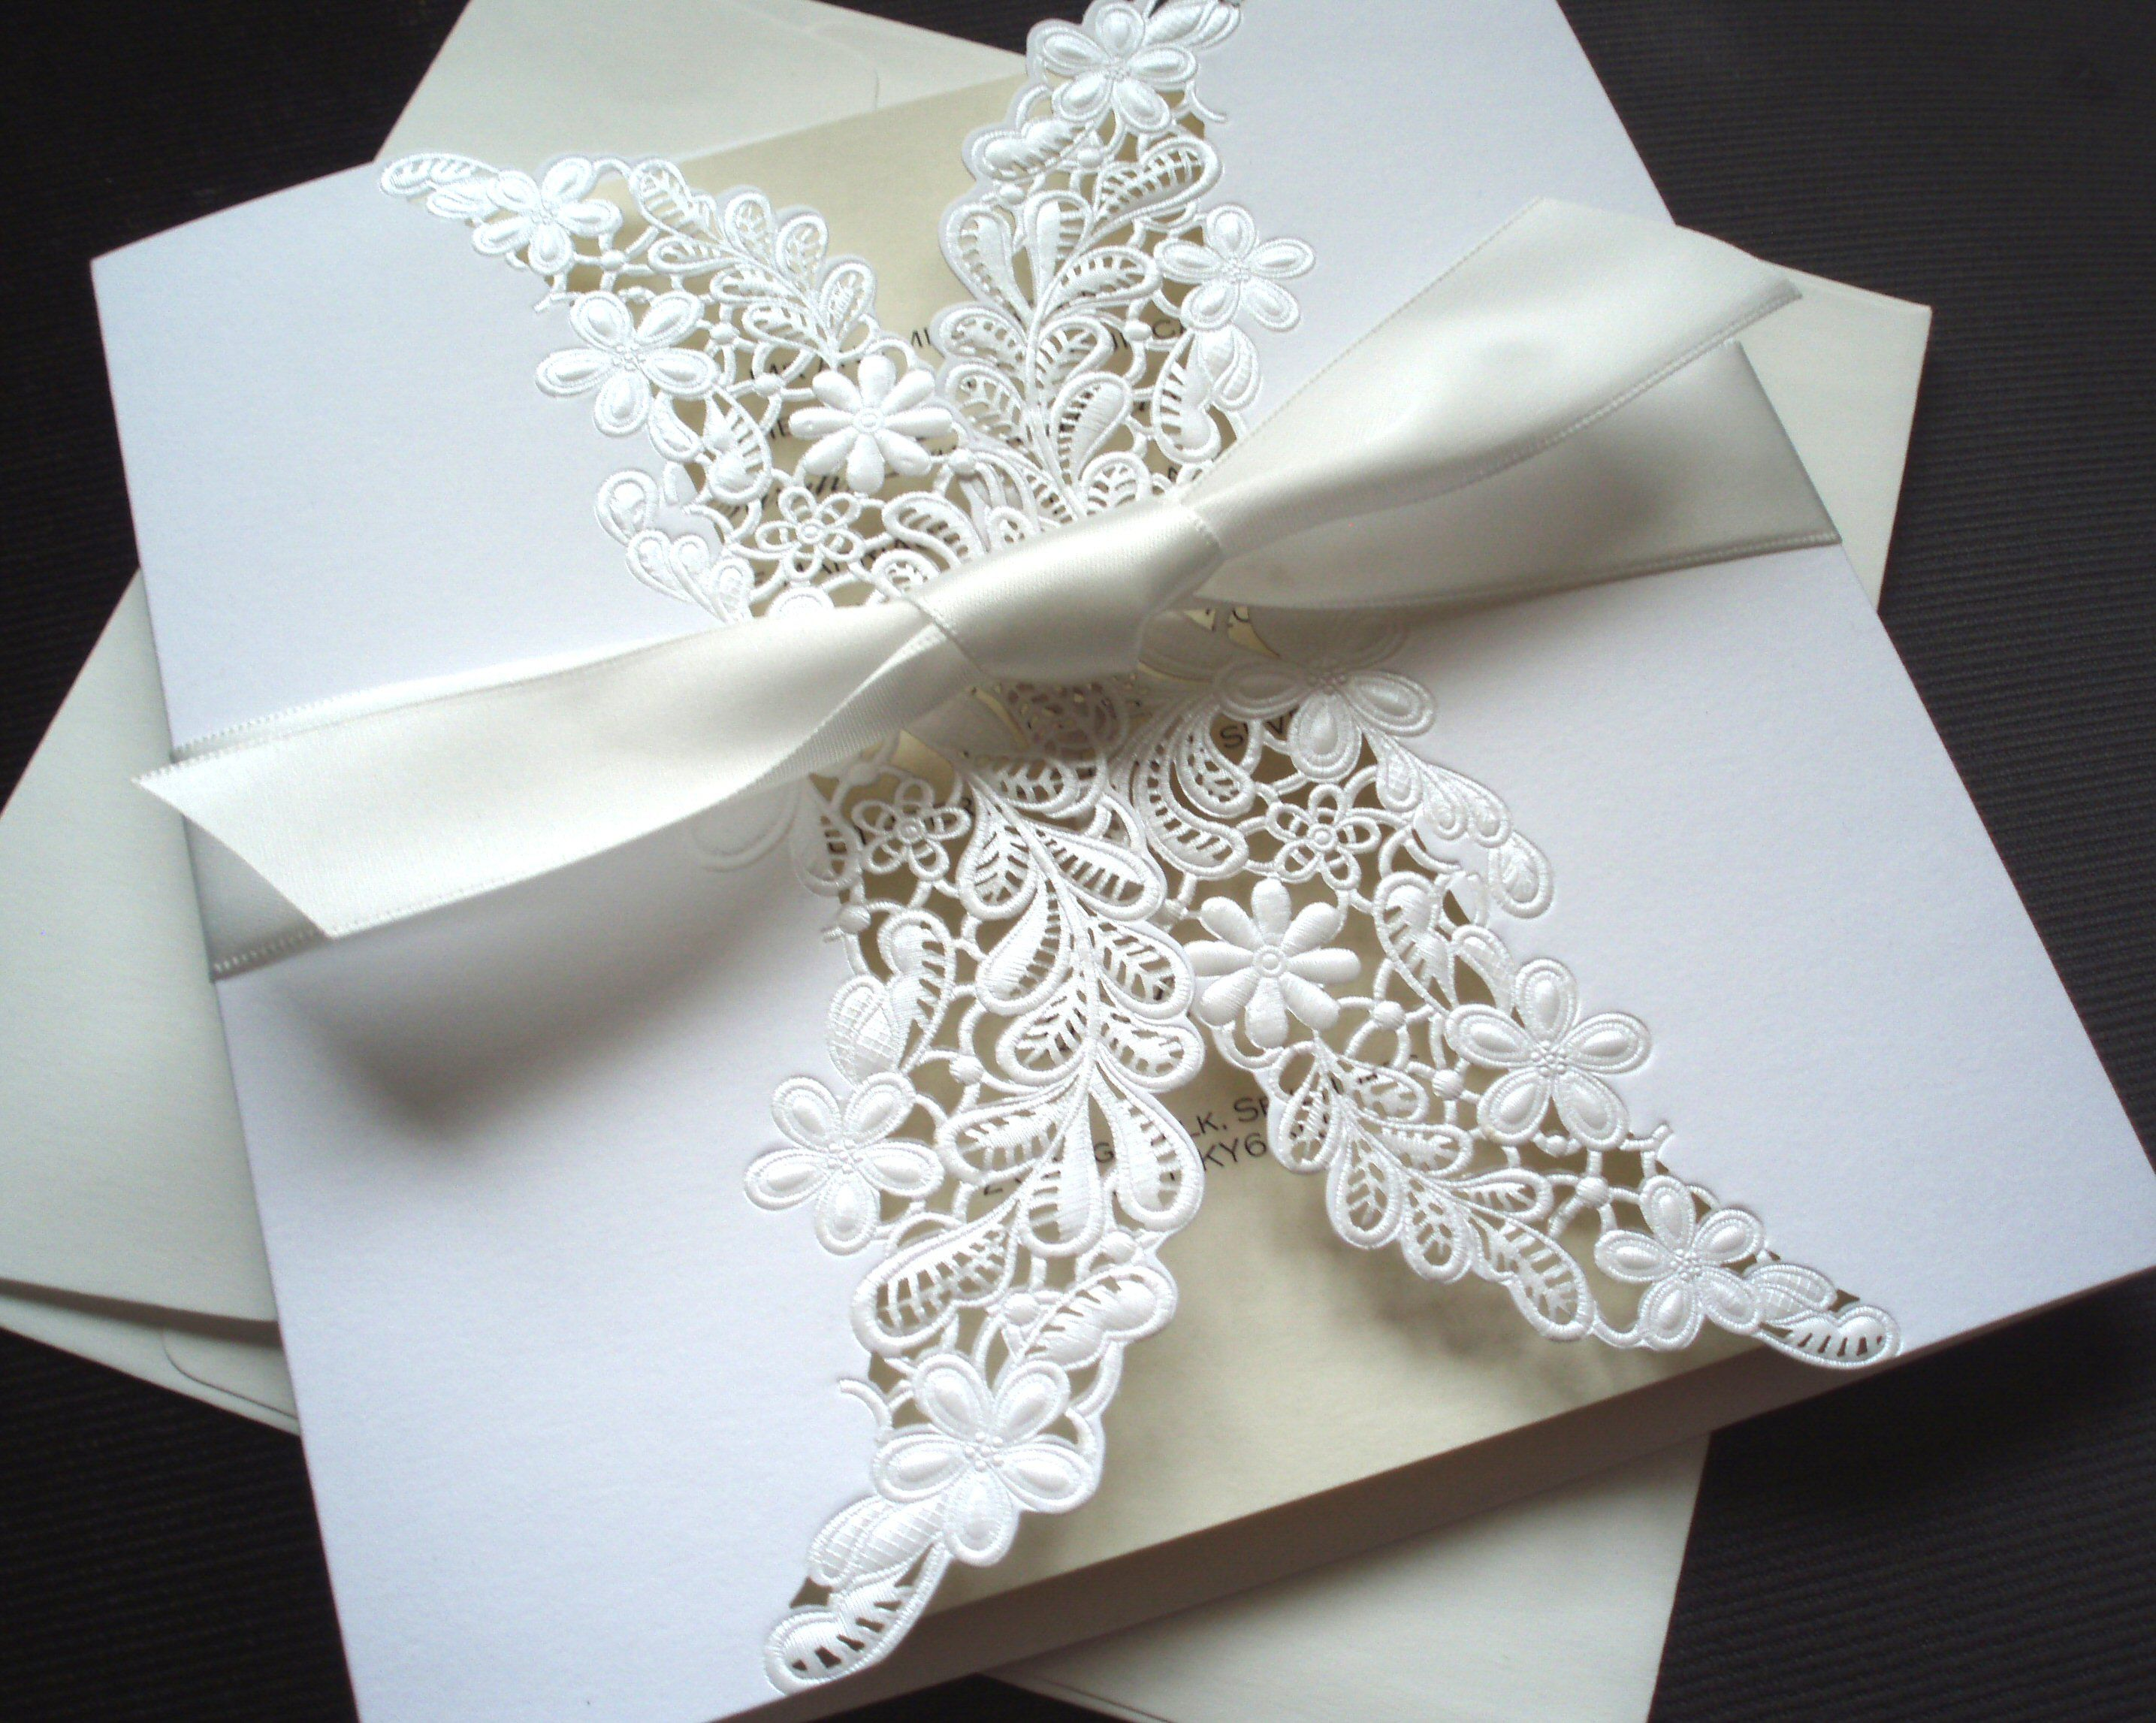 Wholesale DIY wedding invitations. You will need to open an account ...